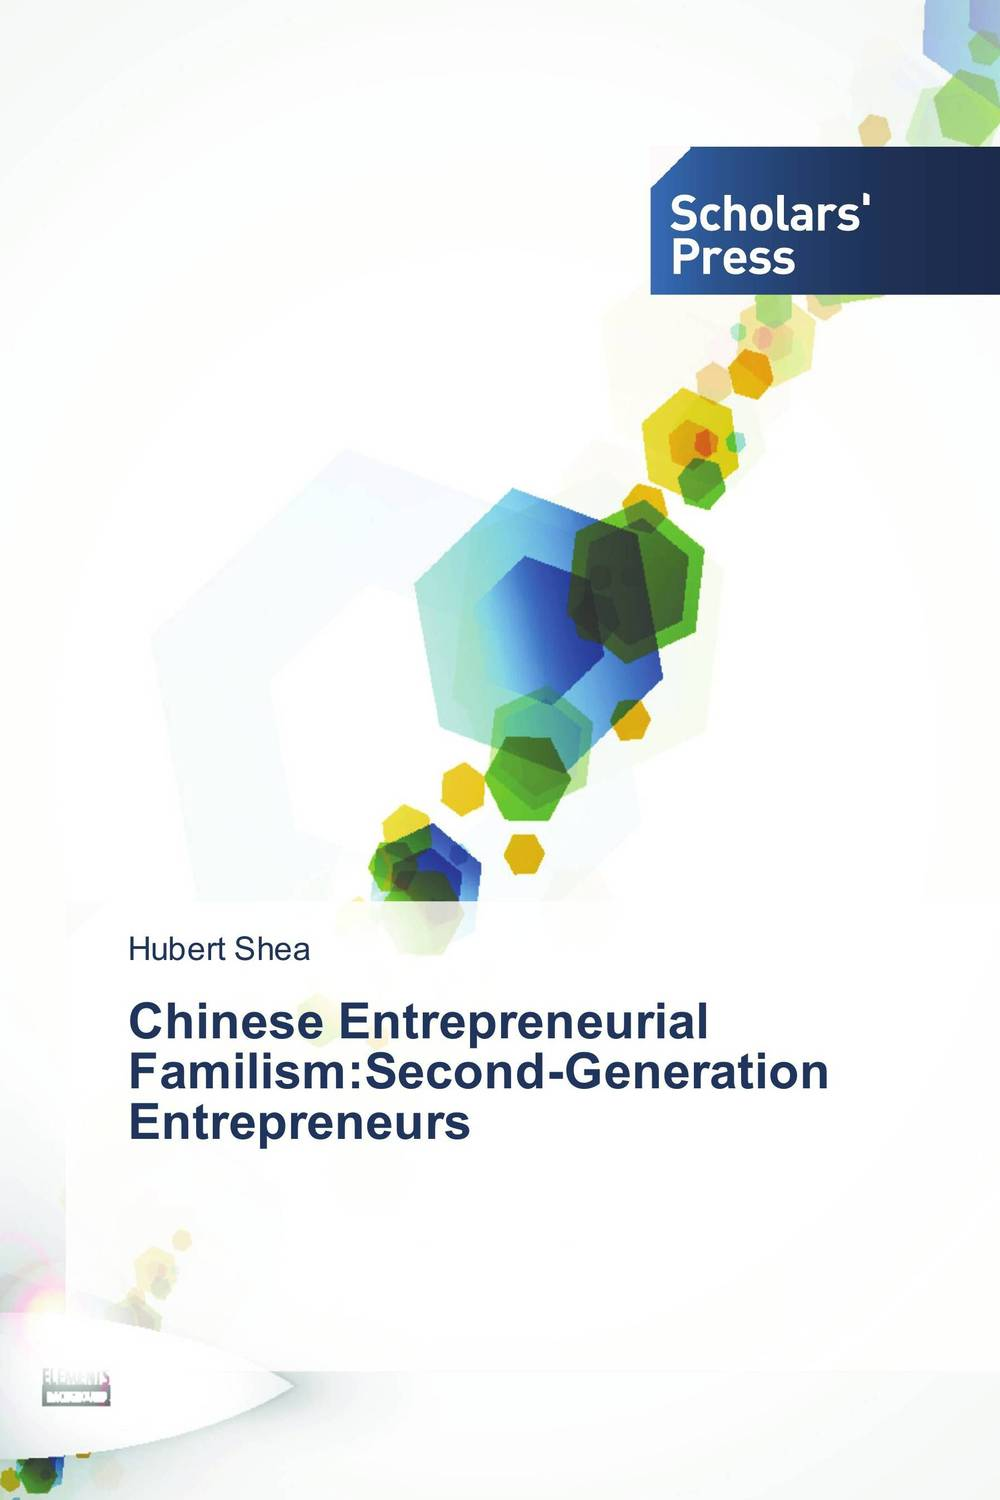 Chinese Entrepreneurial Familism:Second-Generation Entrepreneurs